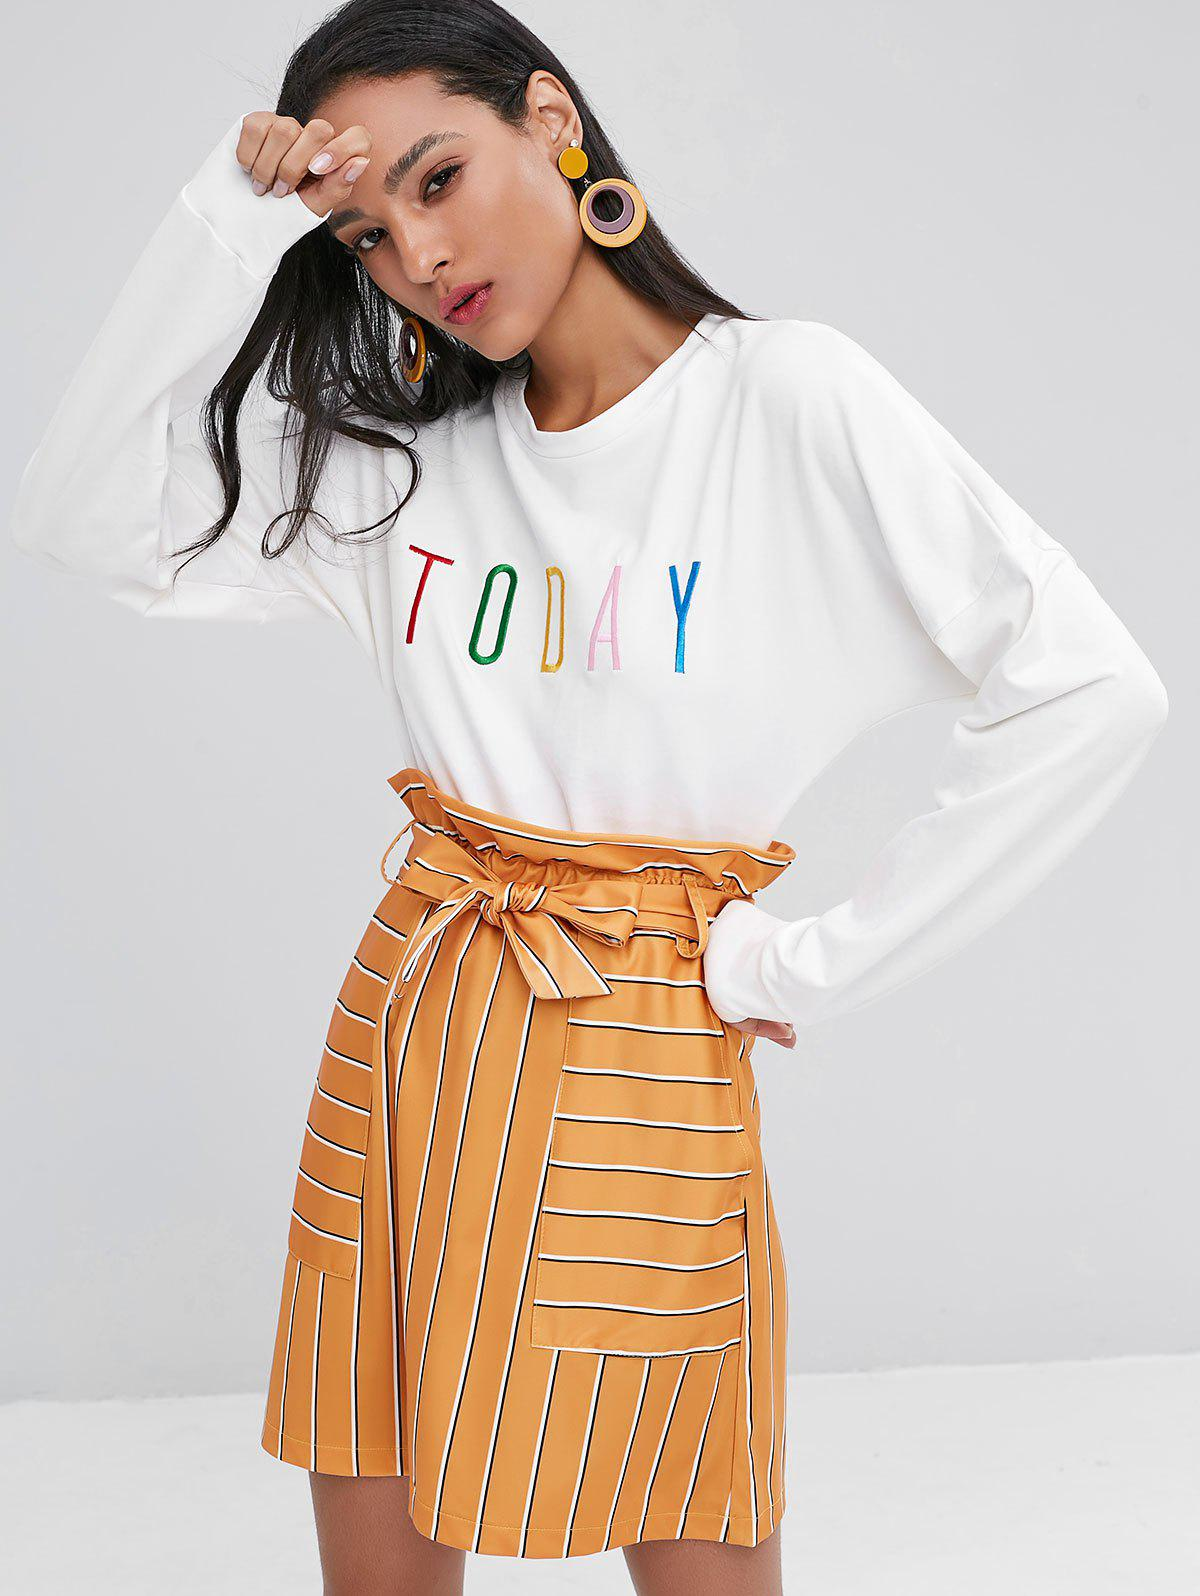 Letter Graphic Embroidered Crop Sweatshirt, White